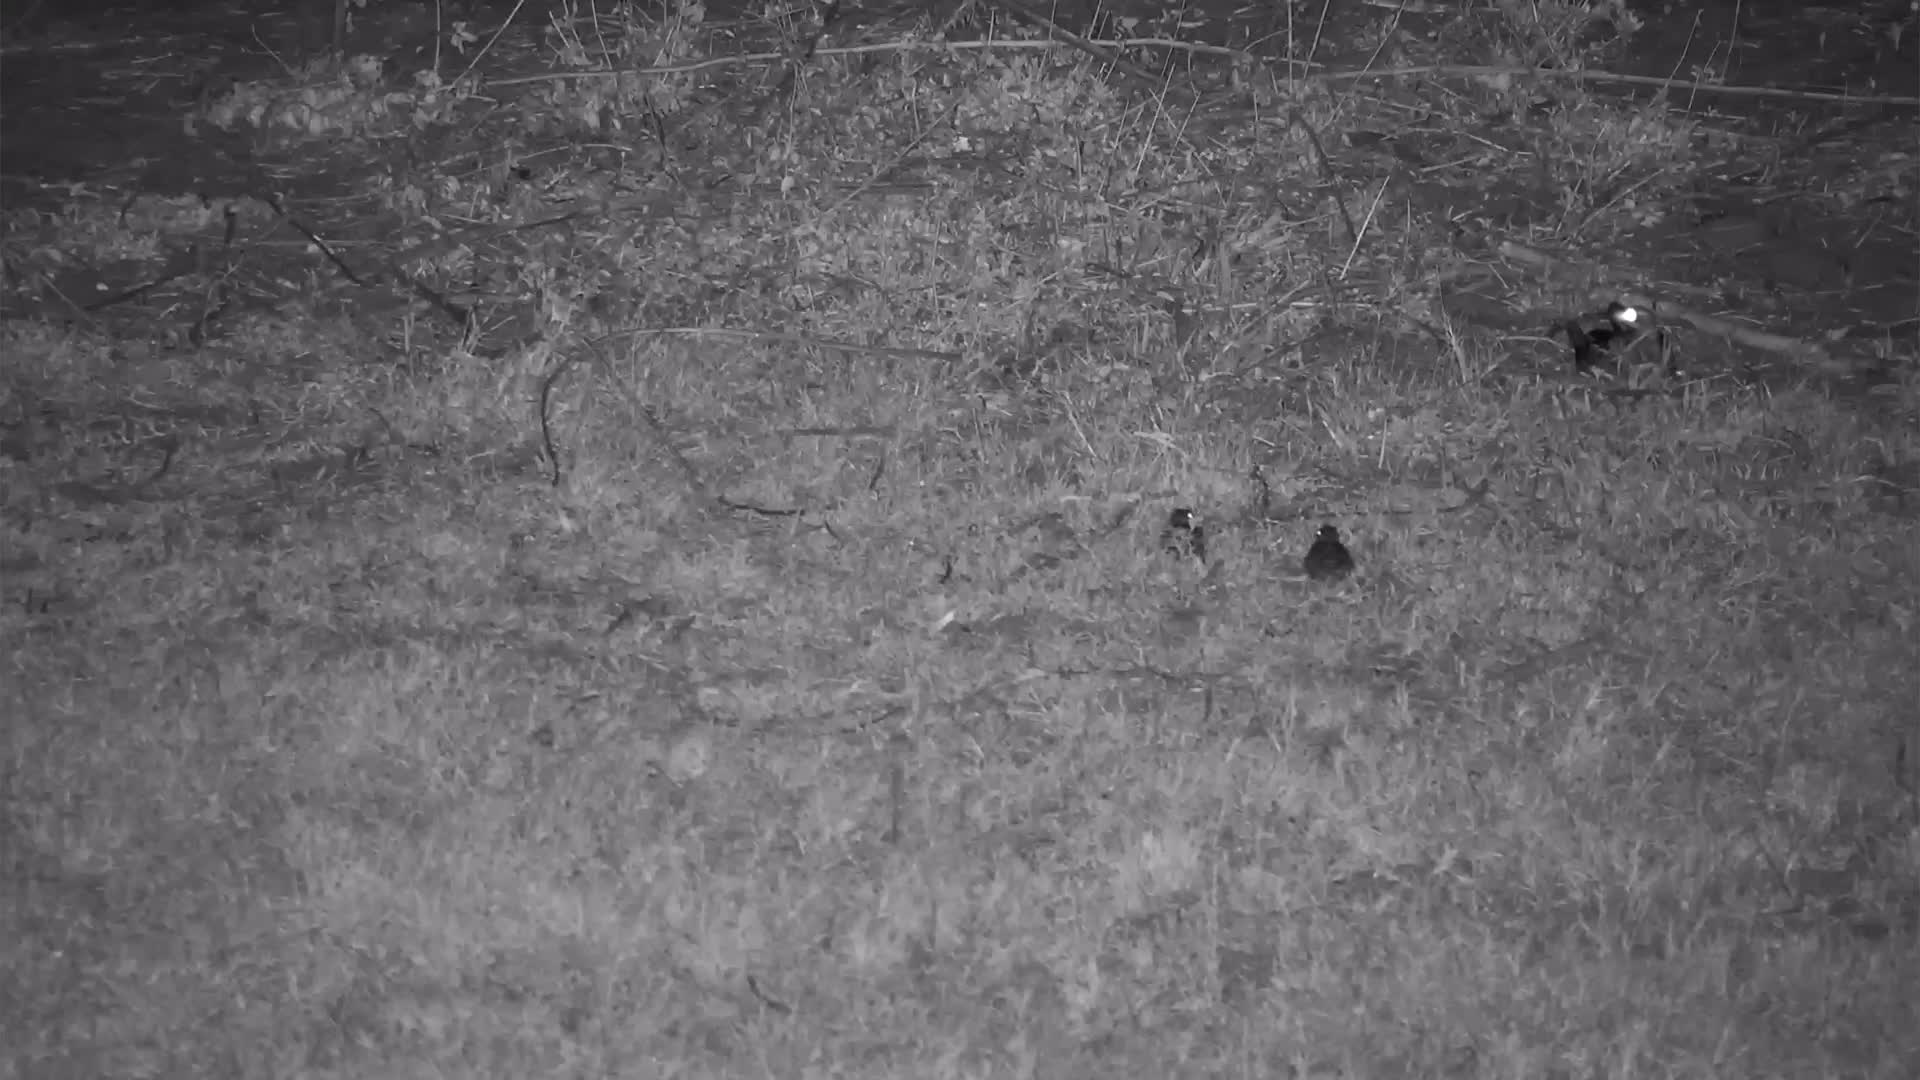 VIDEO: The first flight attempts of the young Nightjars